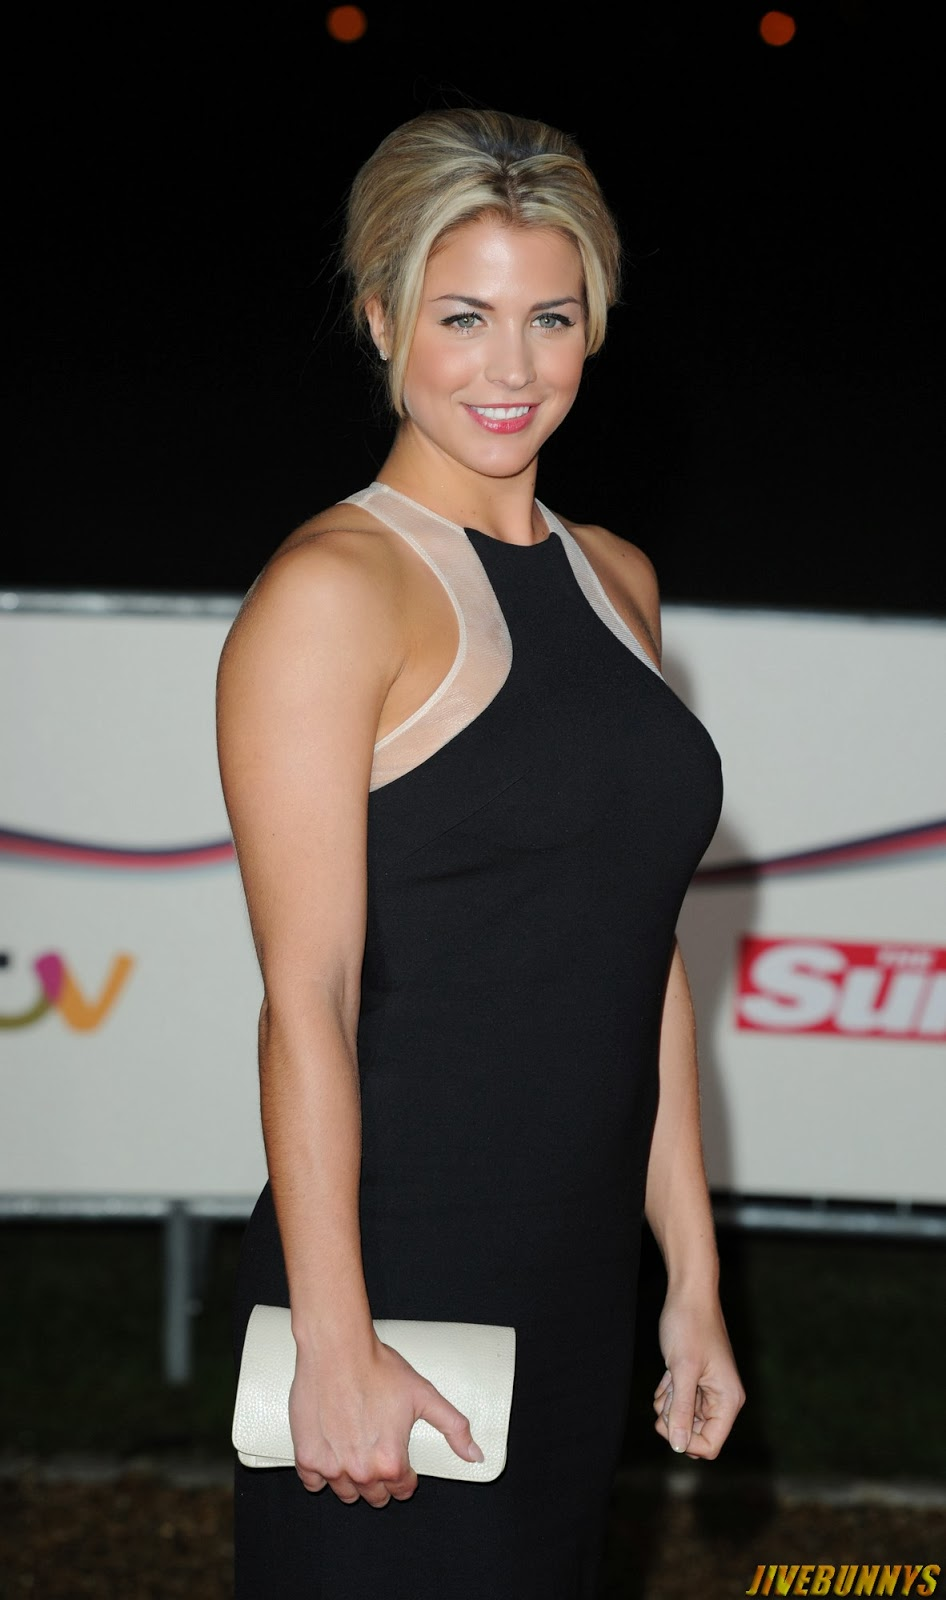 gemma atkinson image 40 - photo #31